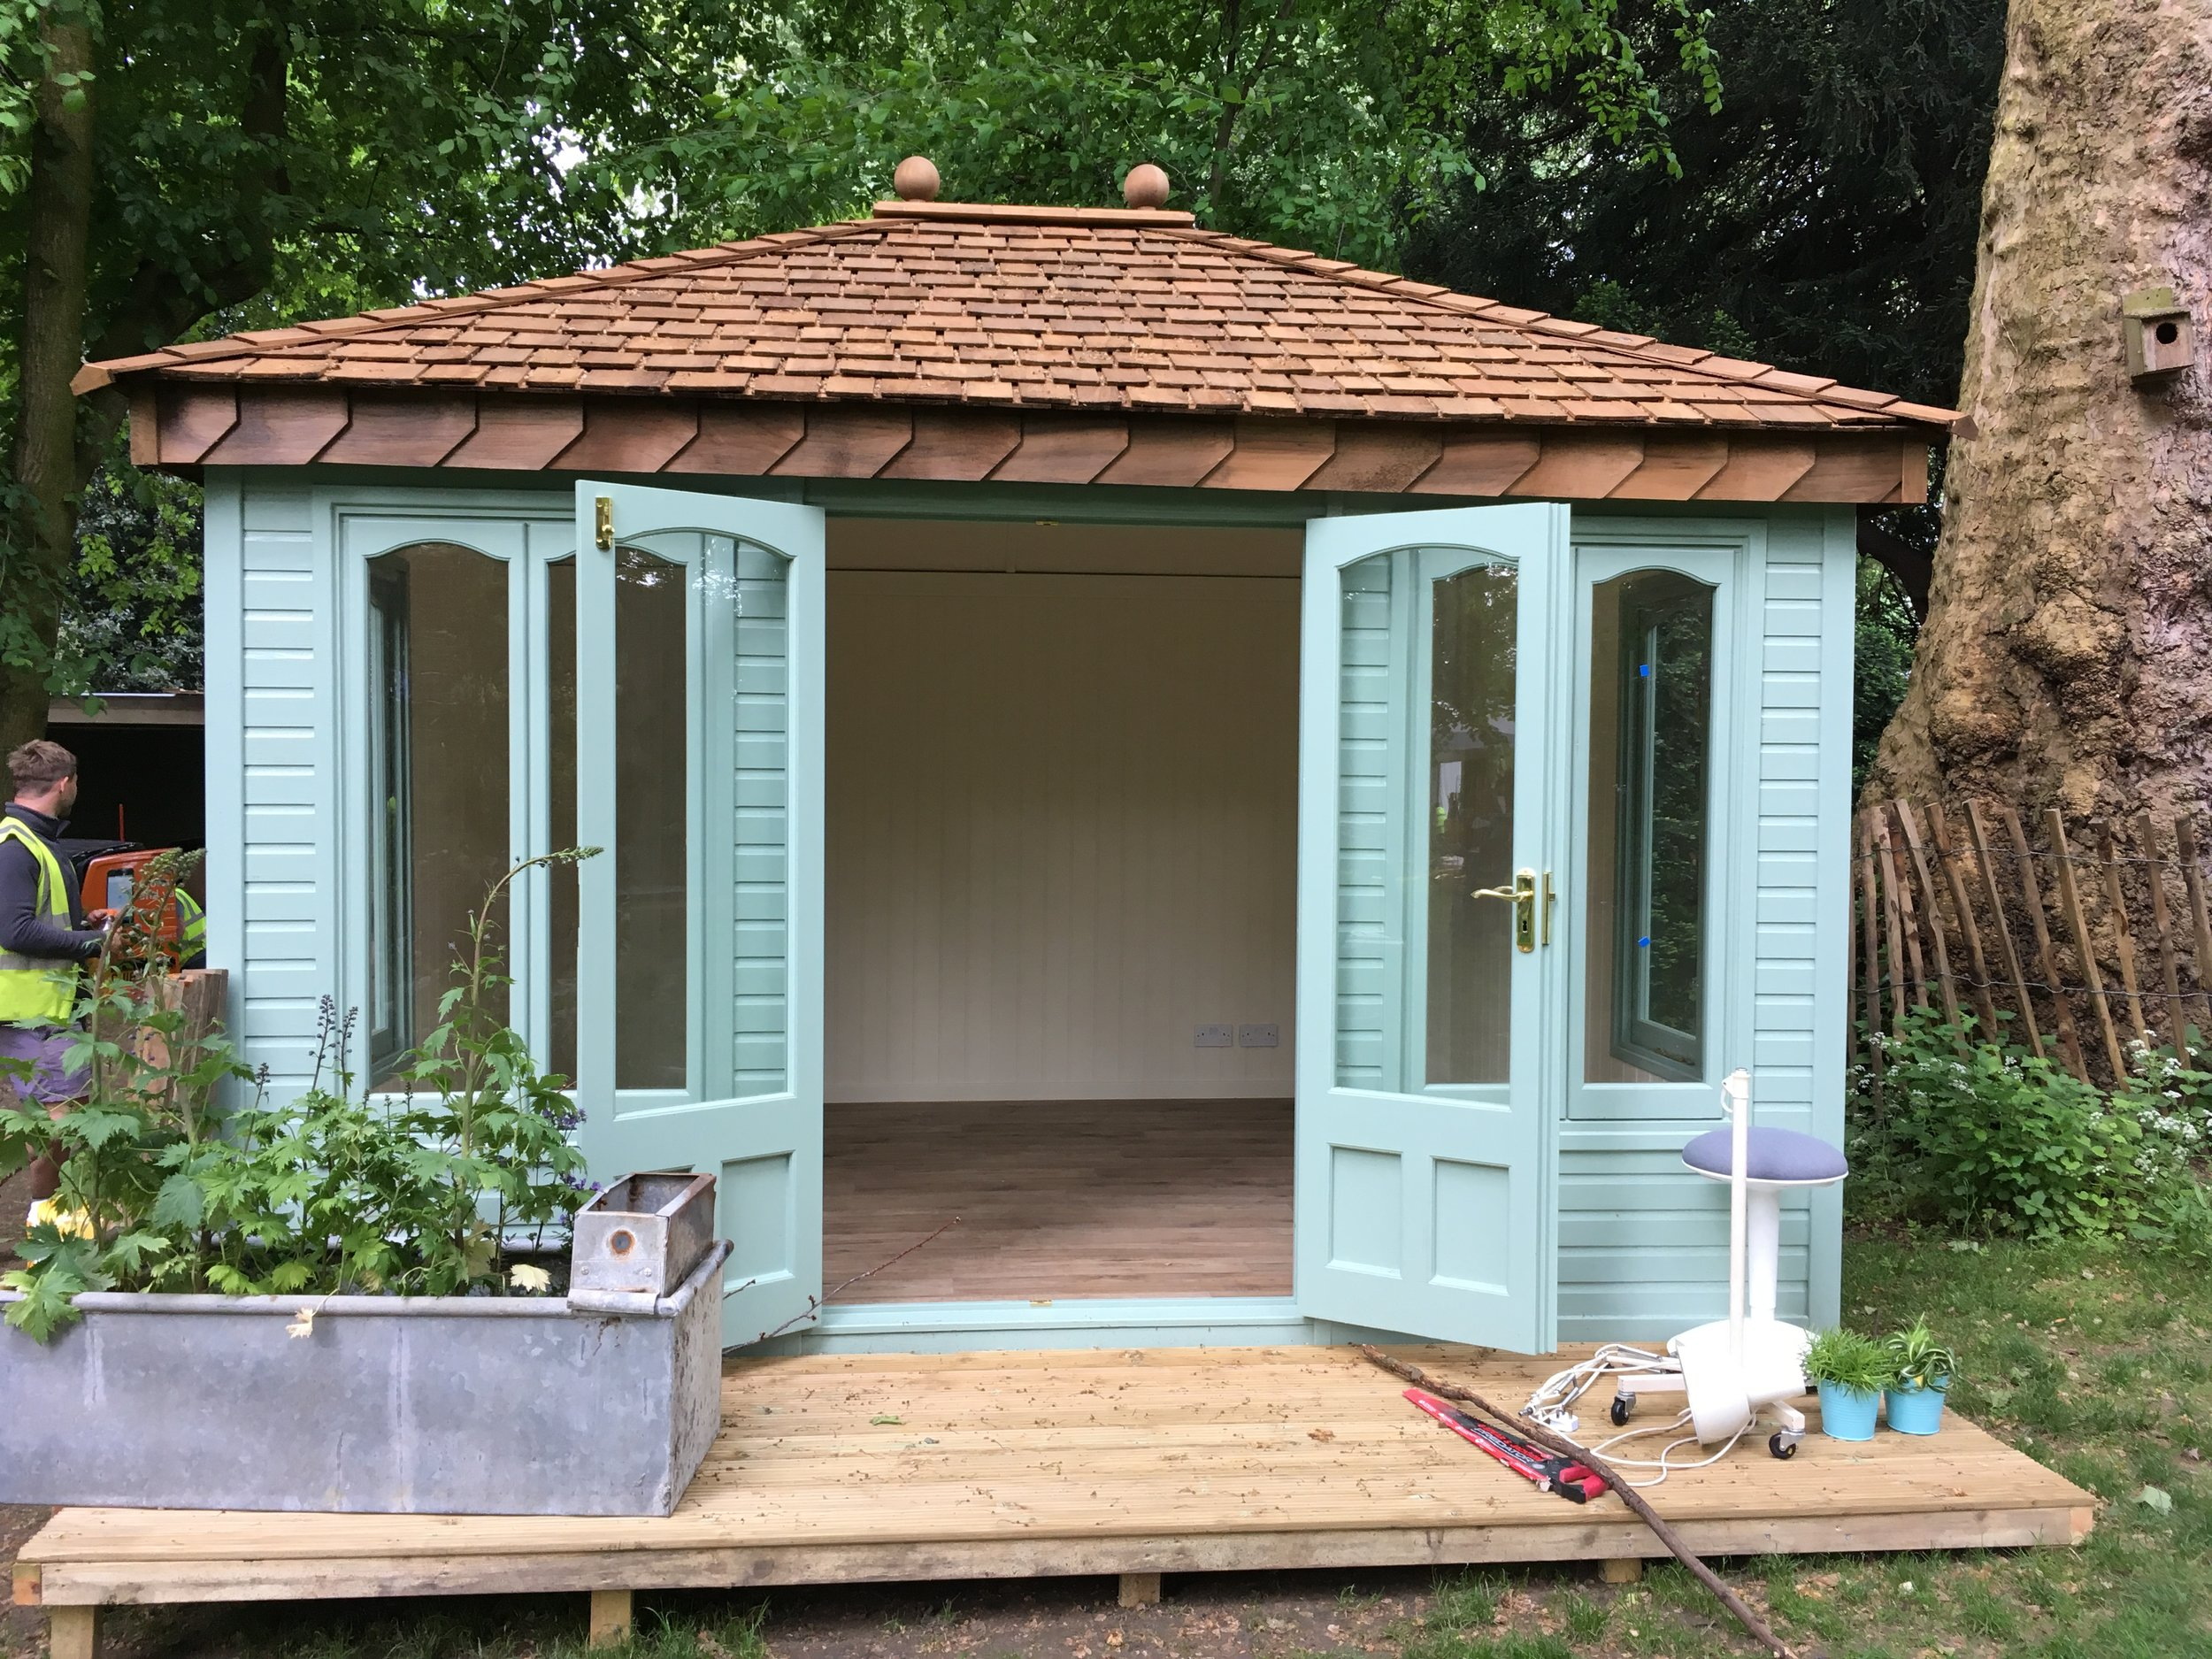 This is the building from Malvern Garden Buildings, these are our sponsors, I got to choose the colour inside and out, the flooring and got a deck added too. Such an honour to be part of the show and given this opportunity.